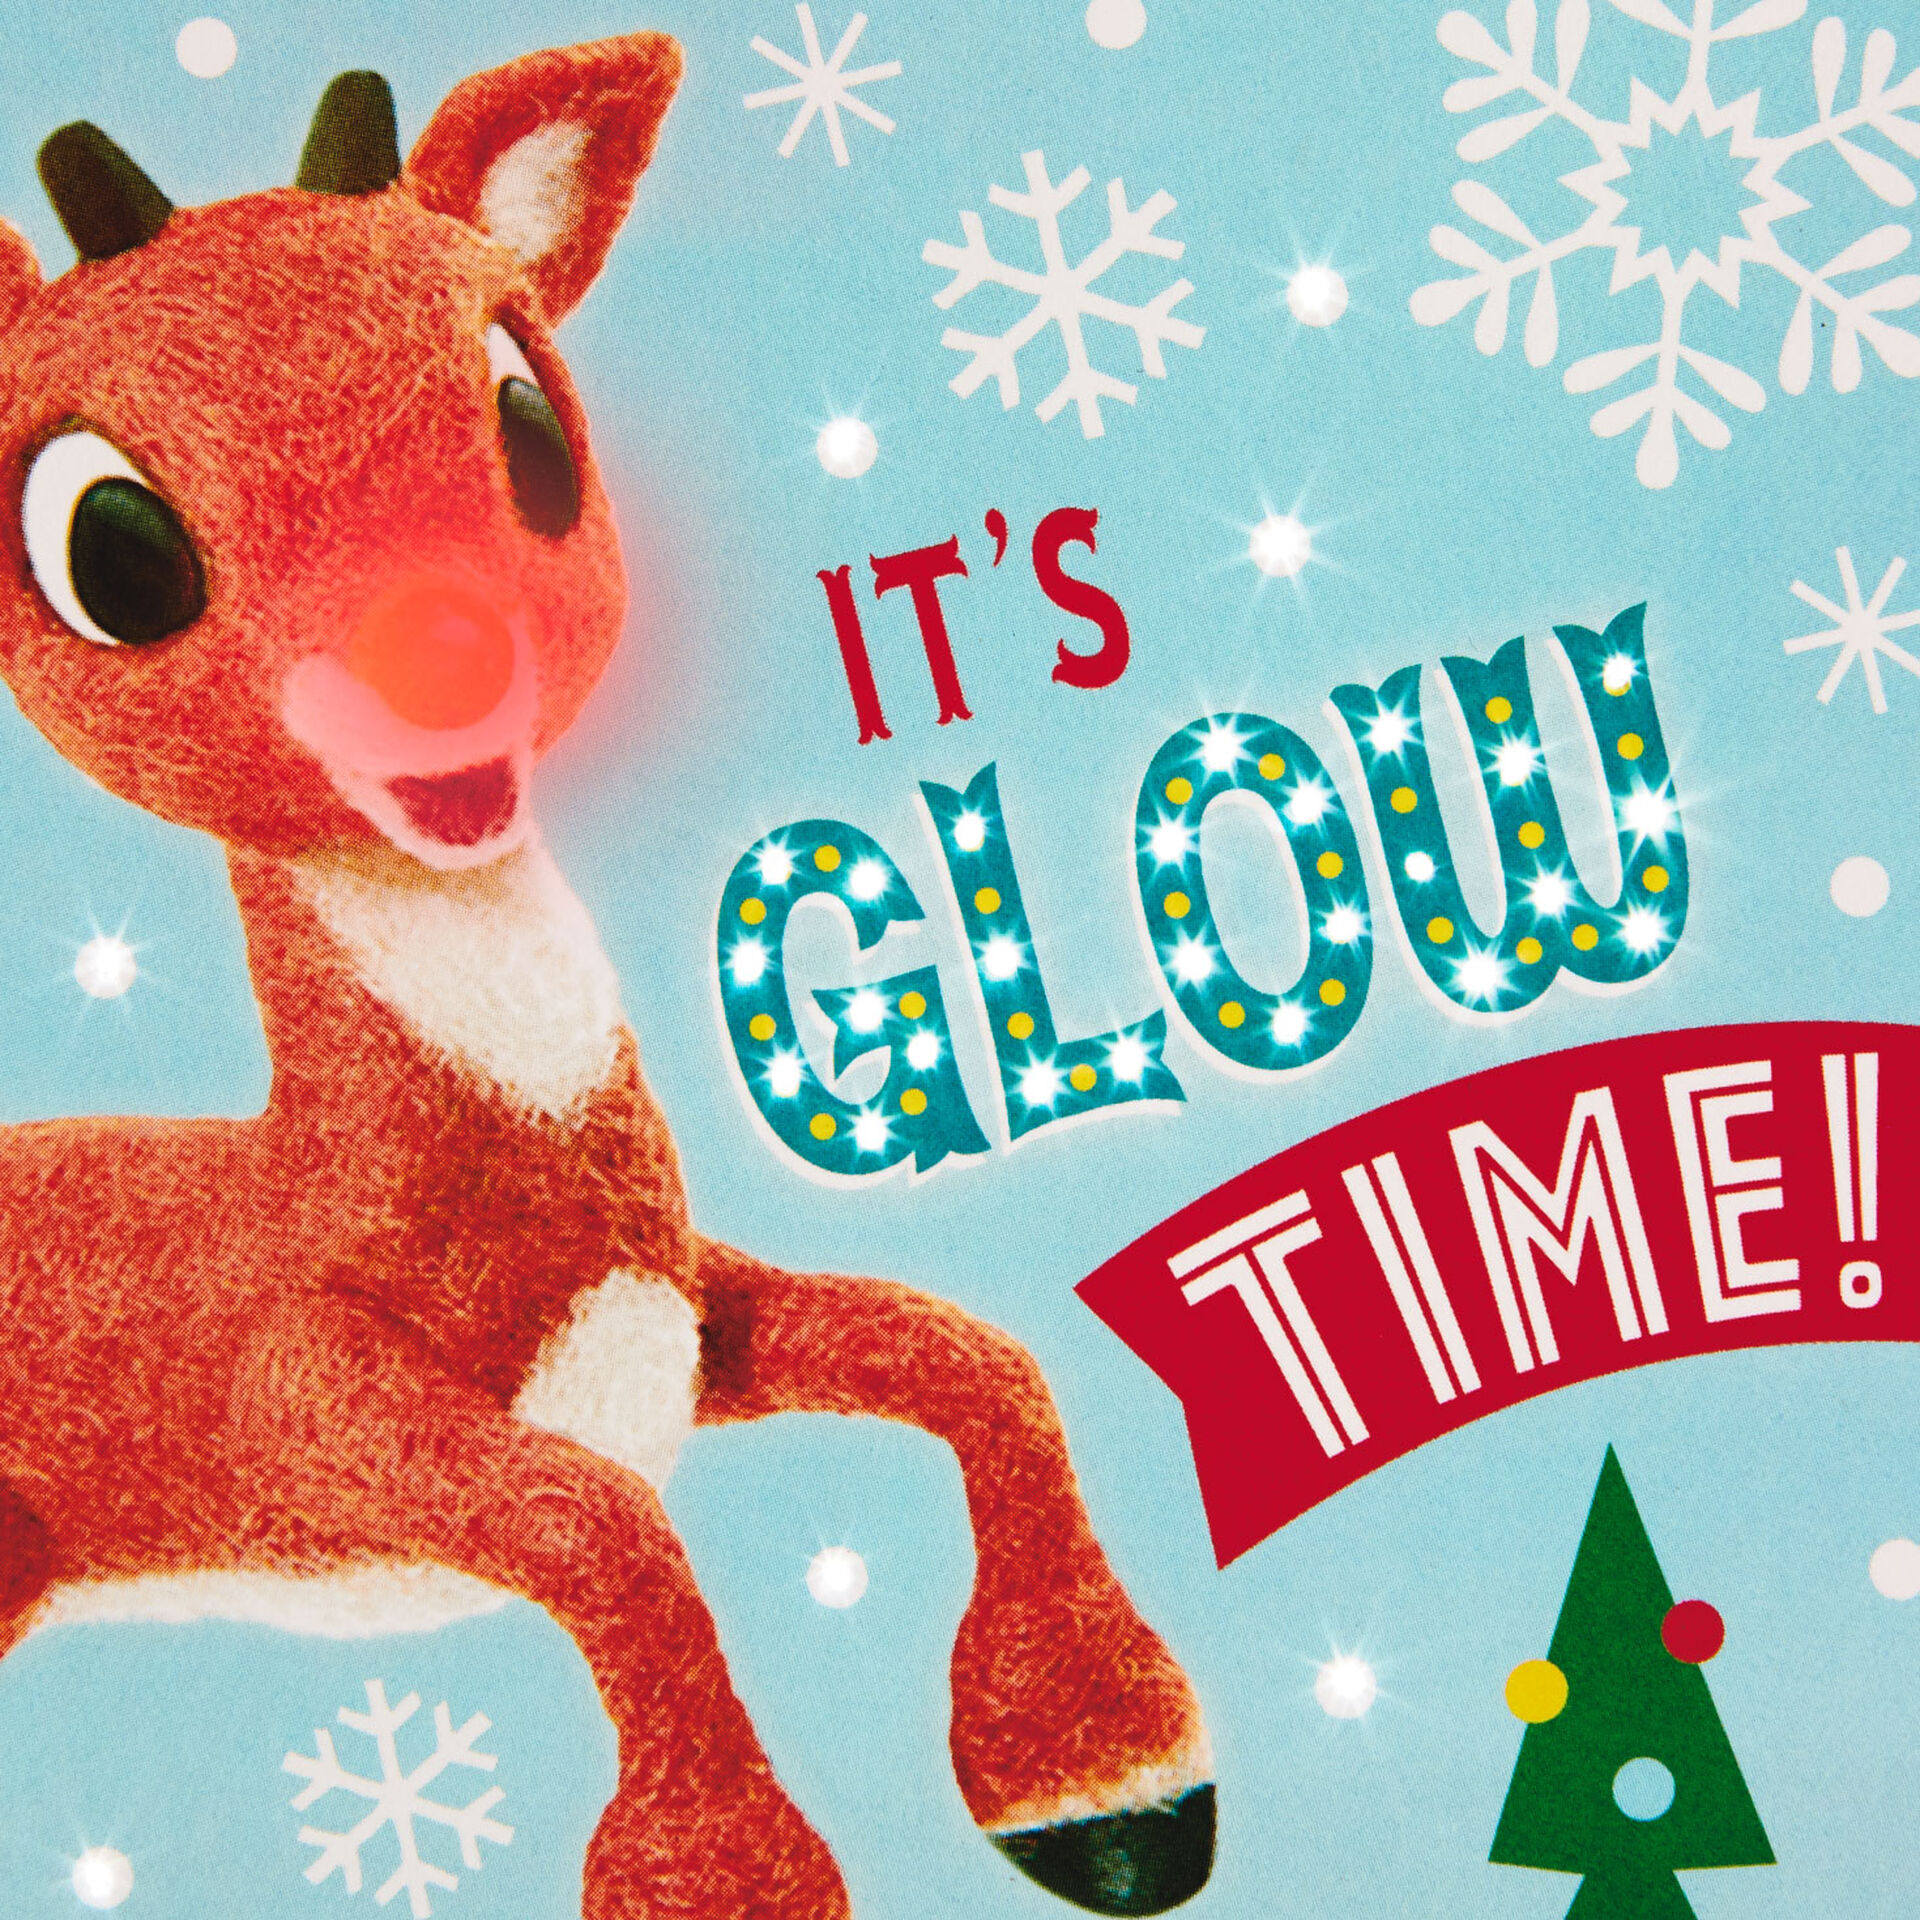 rudolph the red nosed reindeer glow time musical christmas card with light greeting cards hallmark rudolph the red nosed reindeer glow time musical christmas card with light